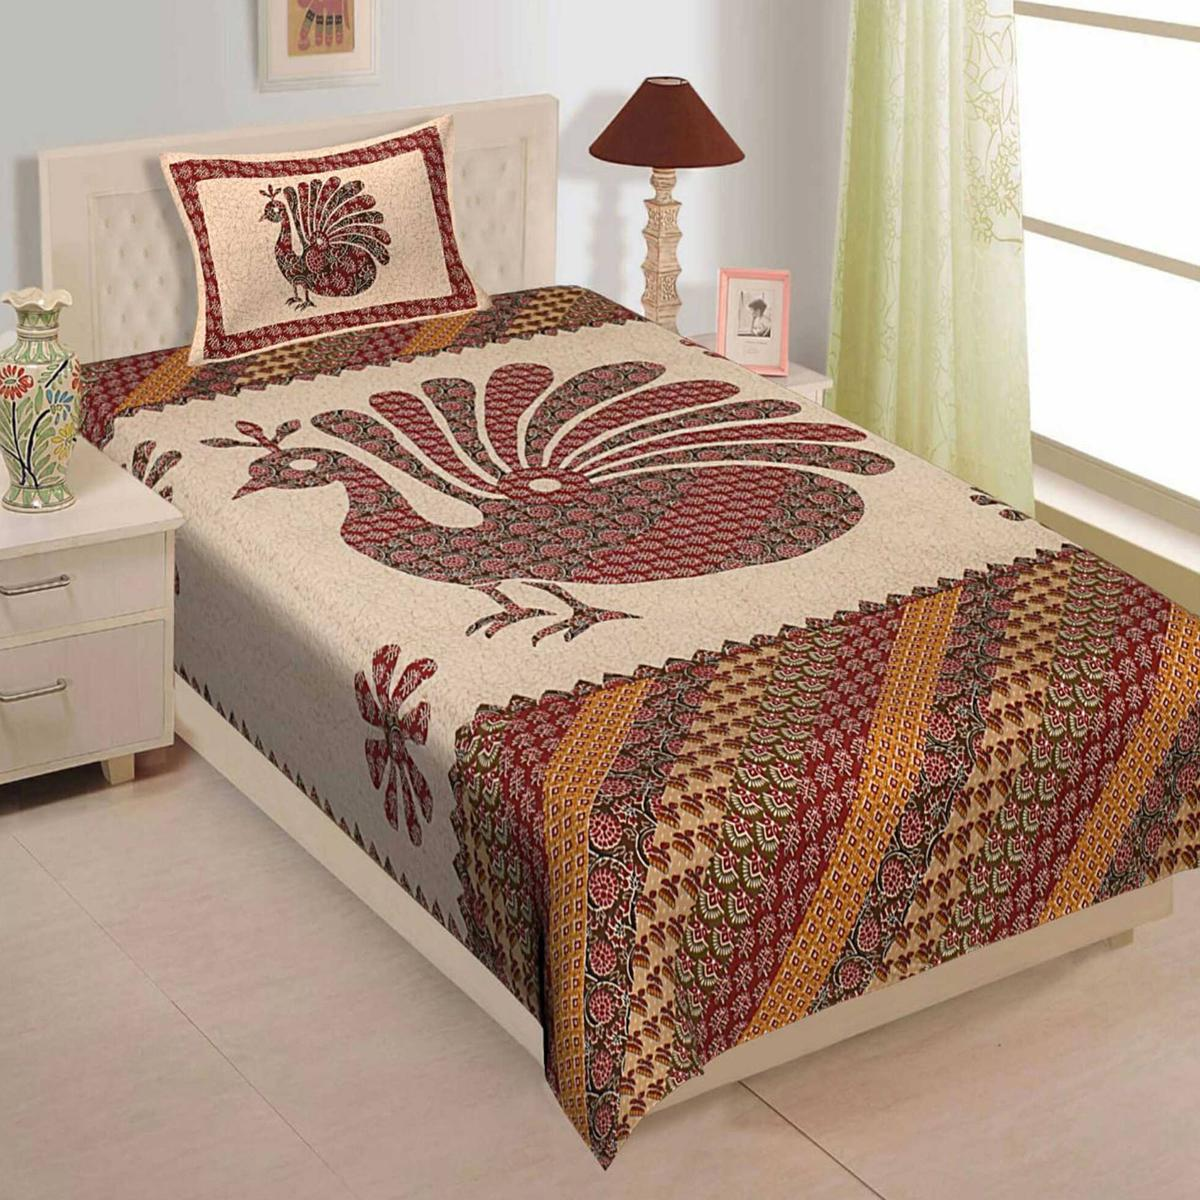 Impressive Orange Colored Peacock Print Cotton Single Bedsheet With 1 Pillow Cover